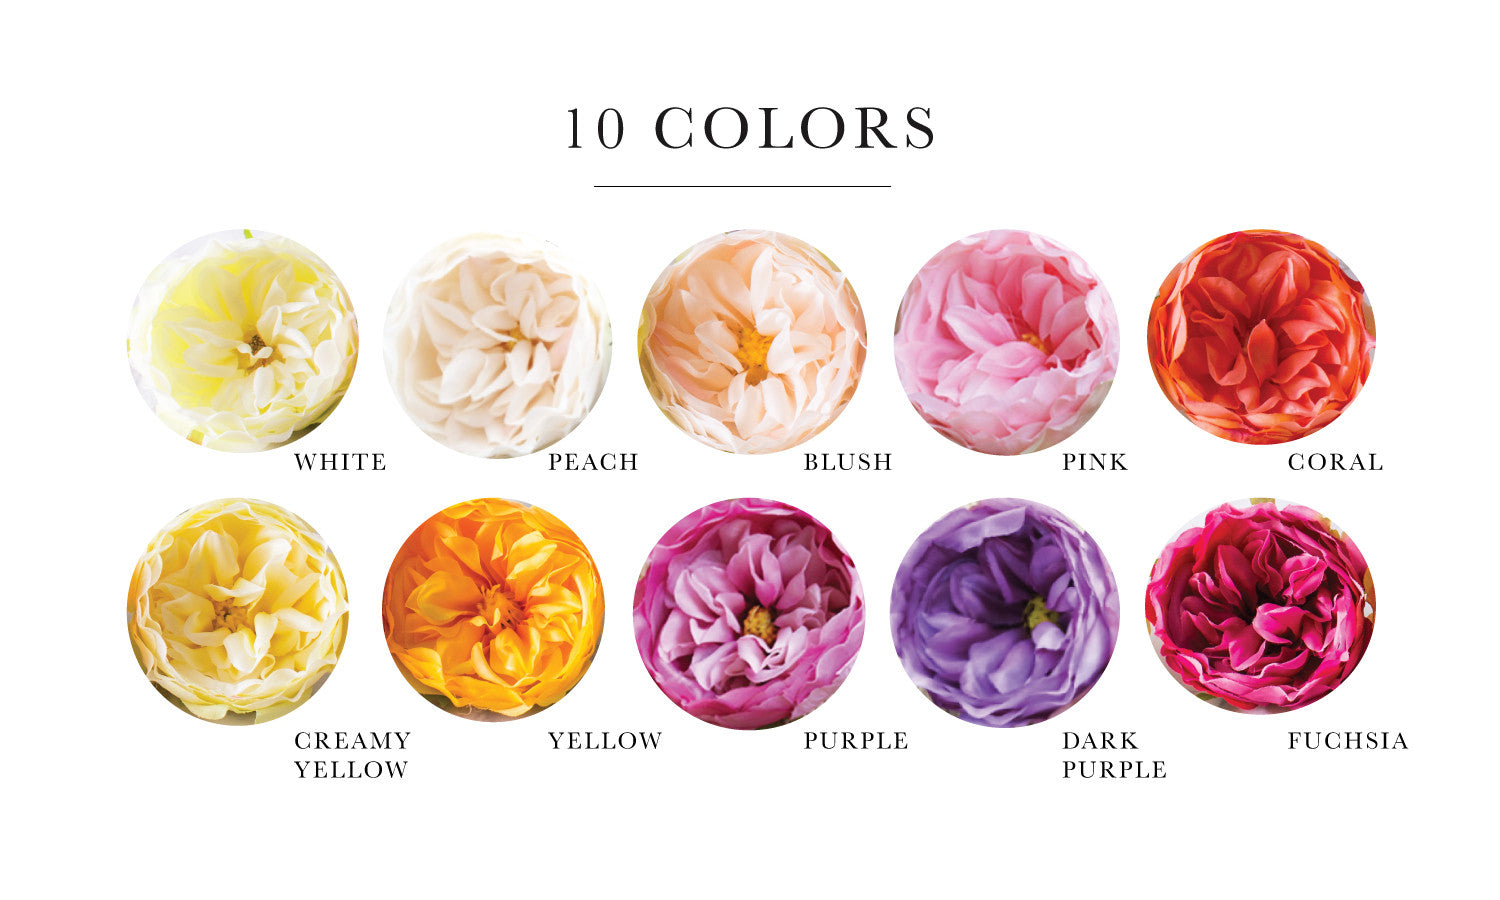 20pcs Garden Roses Silk Flower Heads Silk Flowers For DIY   10 Colors  Available